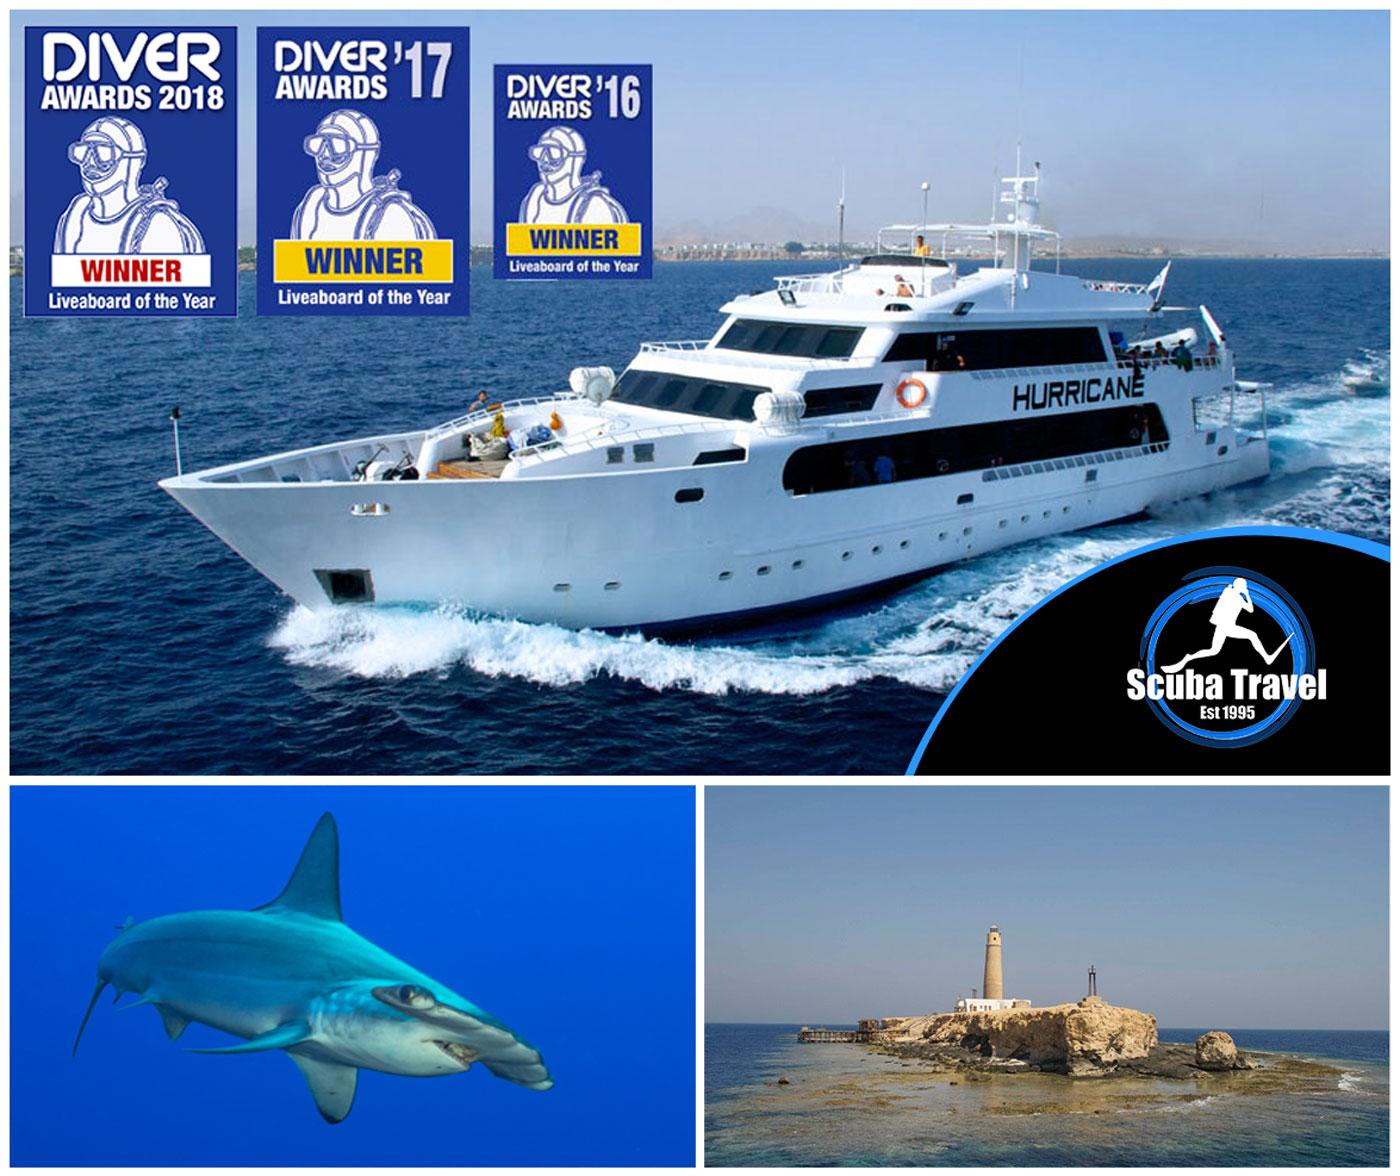 Scuba Travel, Simply the Best, Hurricane,Egypt, Red Sea